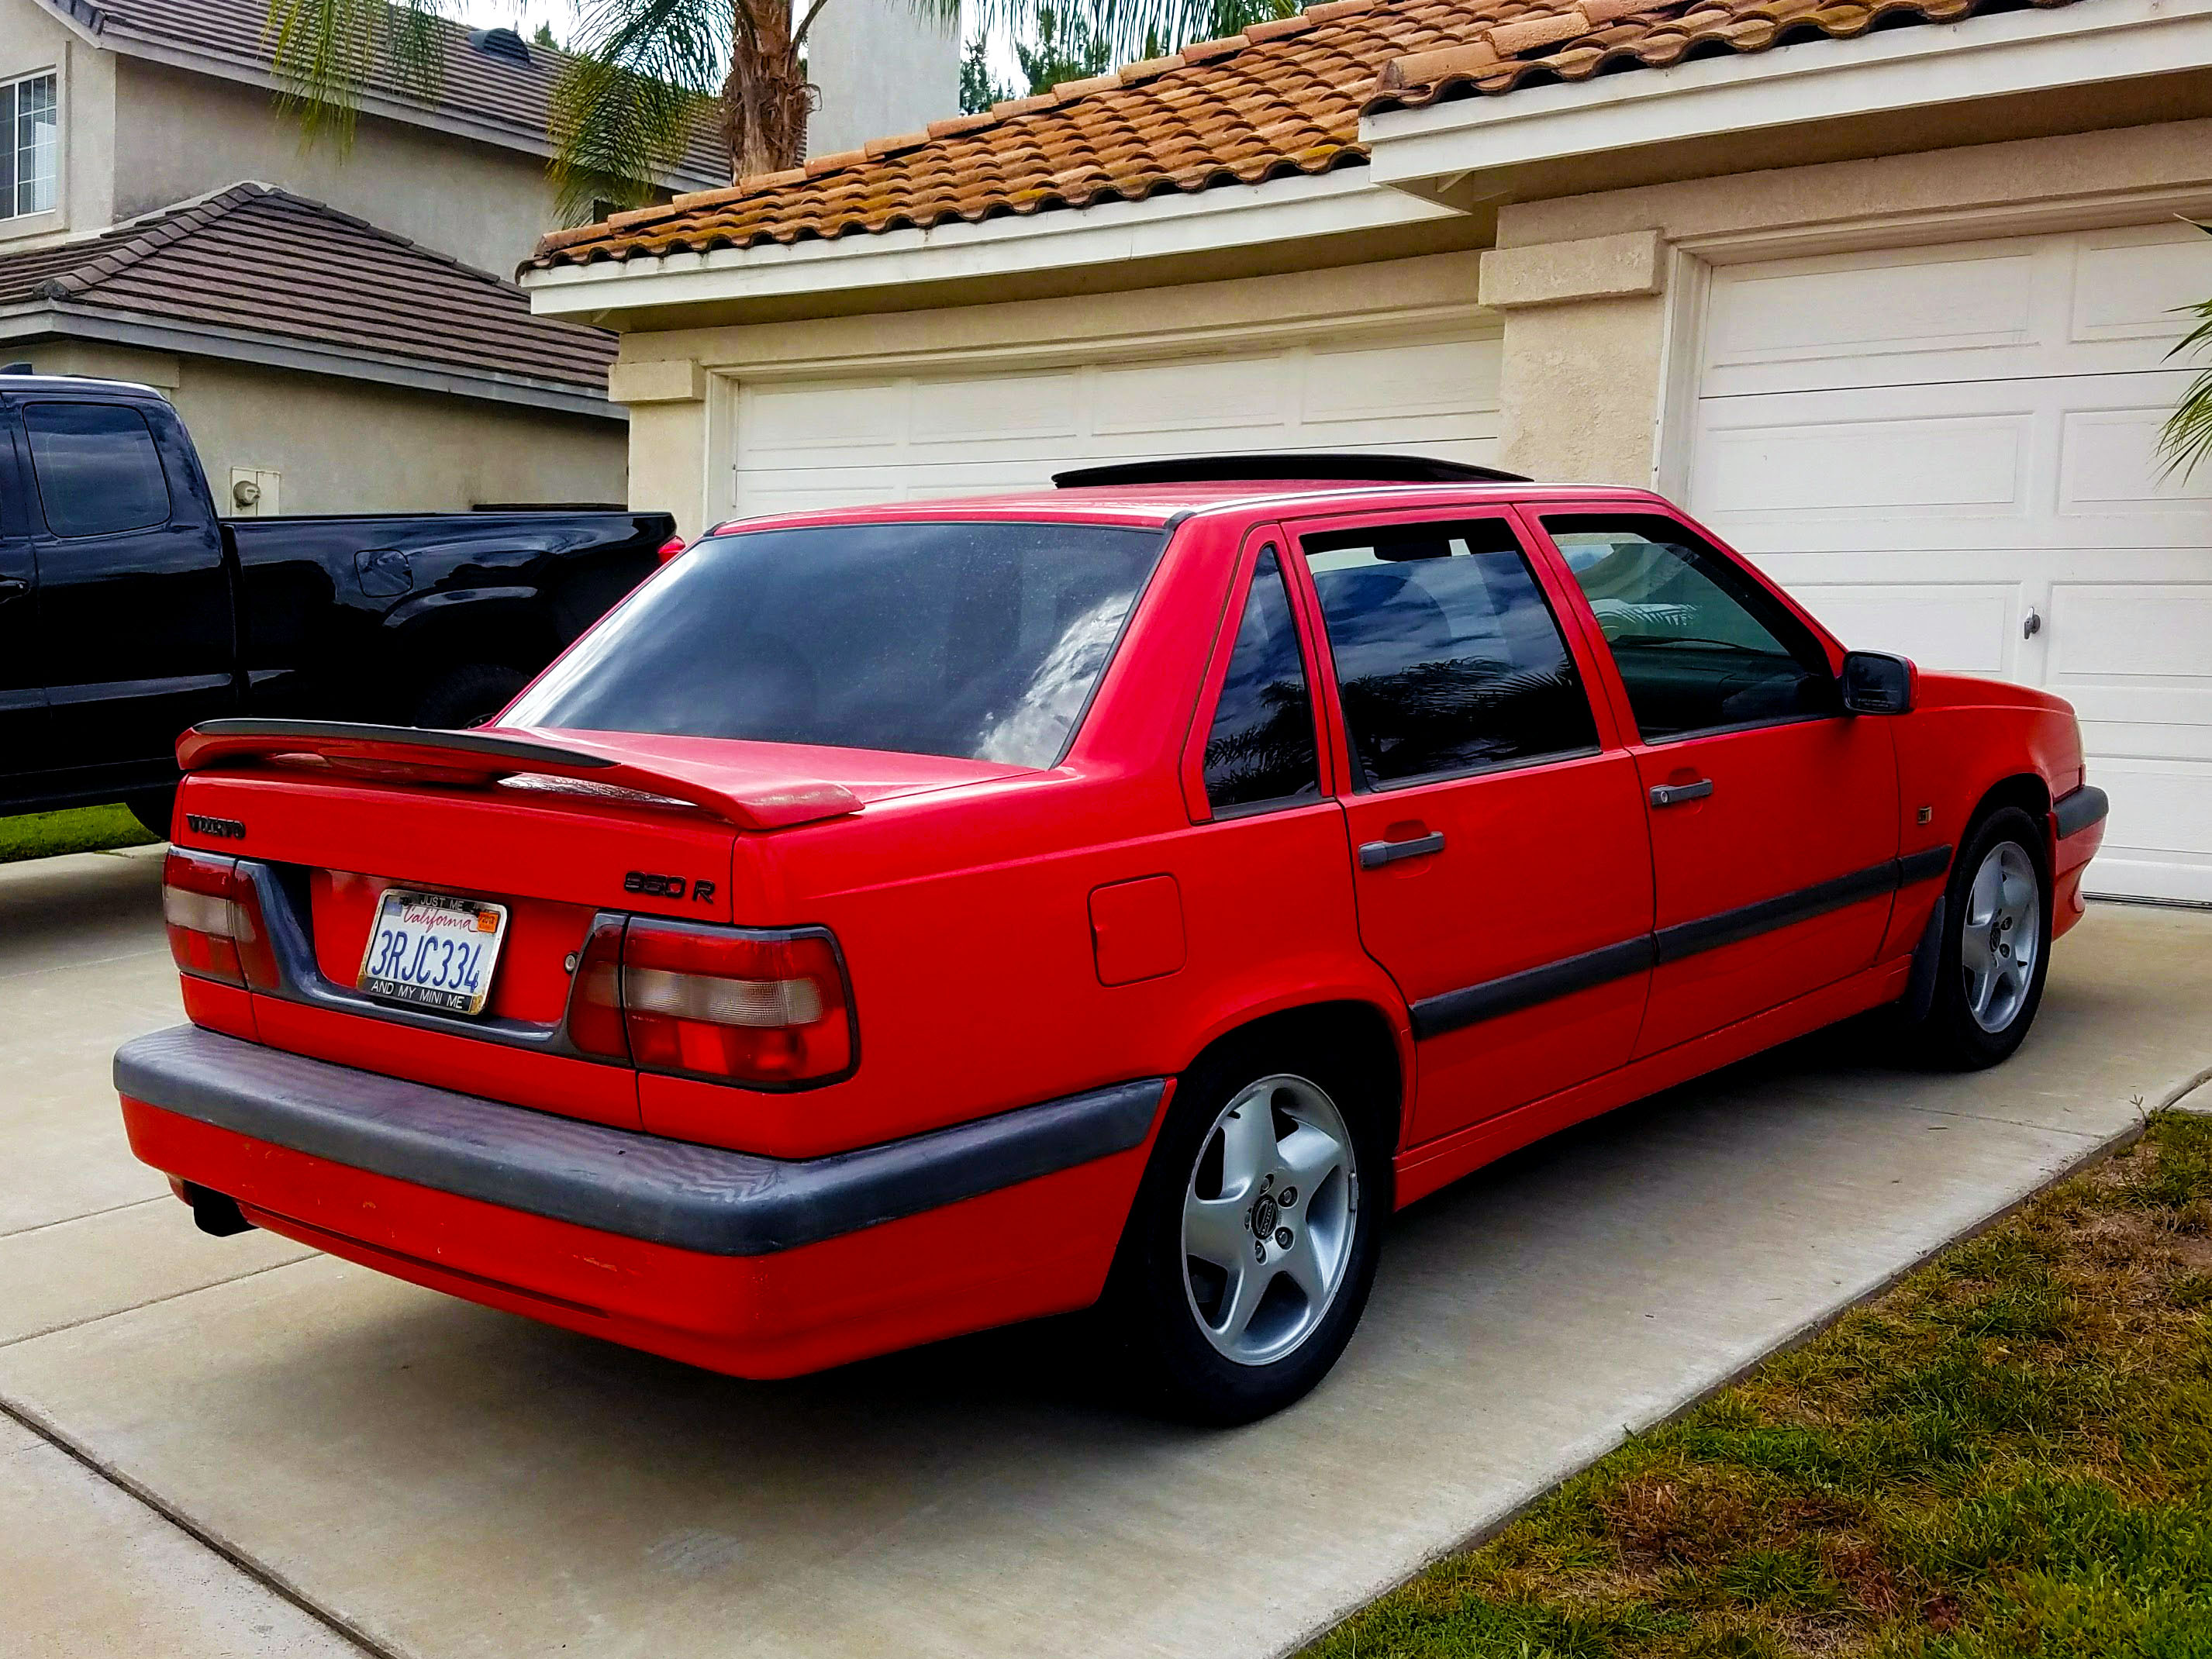 s can you wagon sale the driven photo most buy what car volvo news for